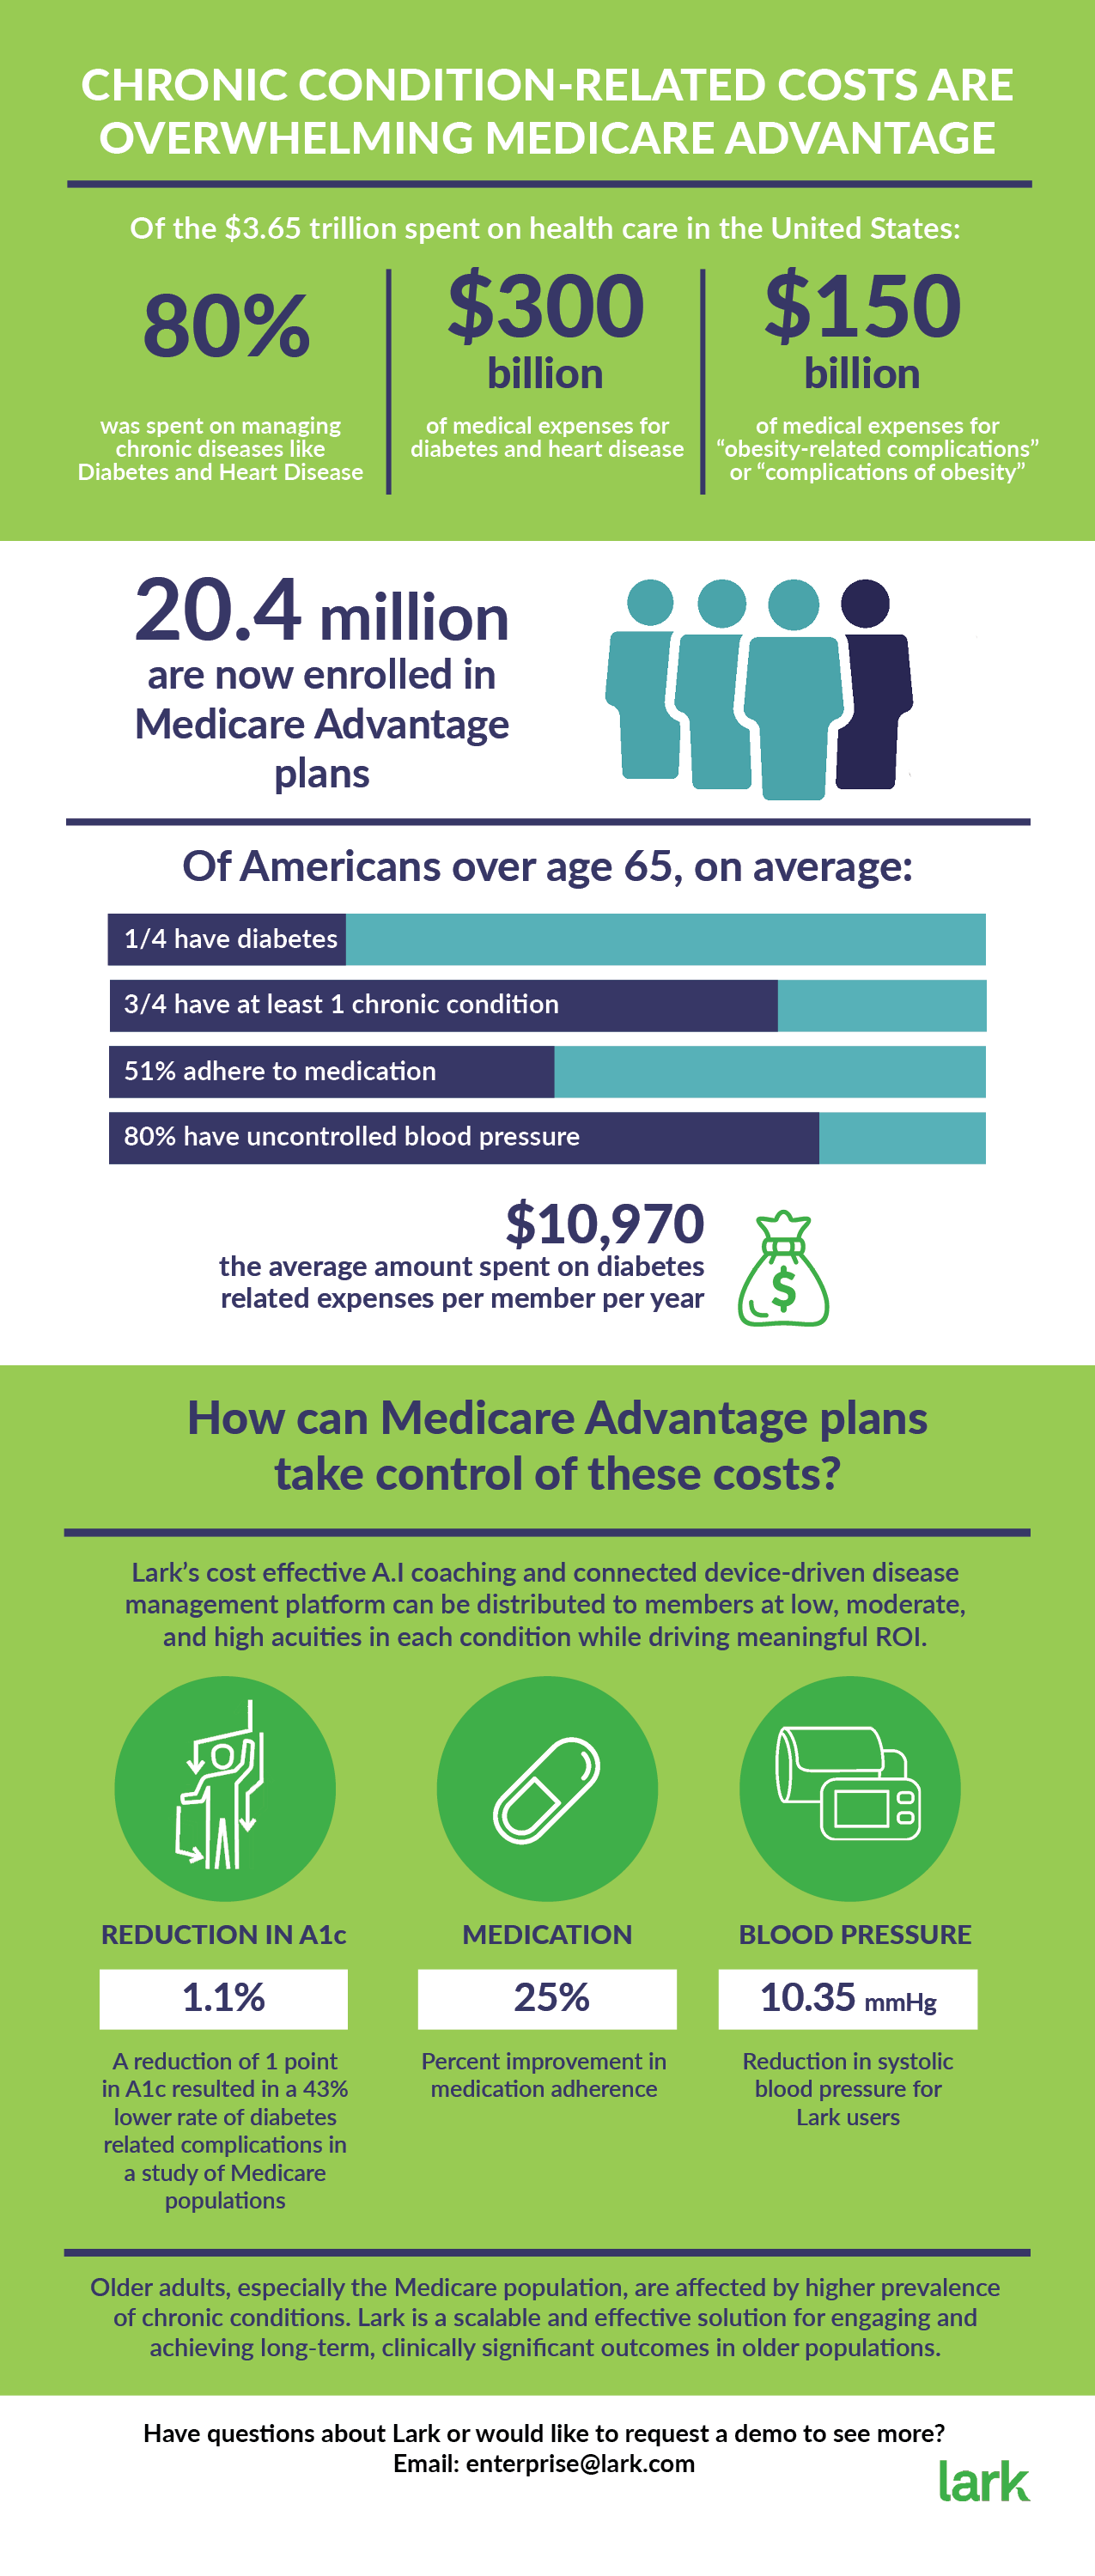 Chronic conditions are overwhelming Medicare Advantage. Lark is here to help.